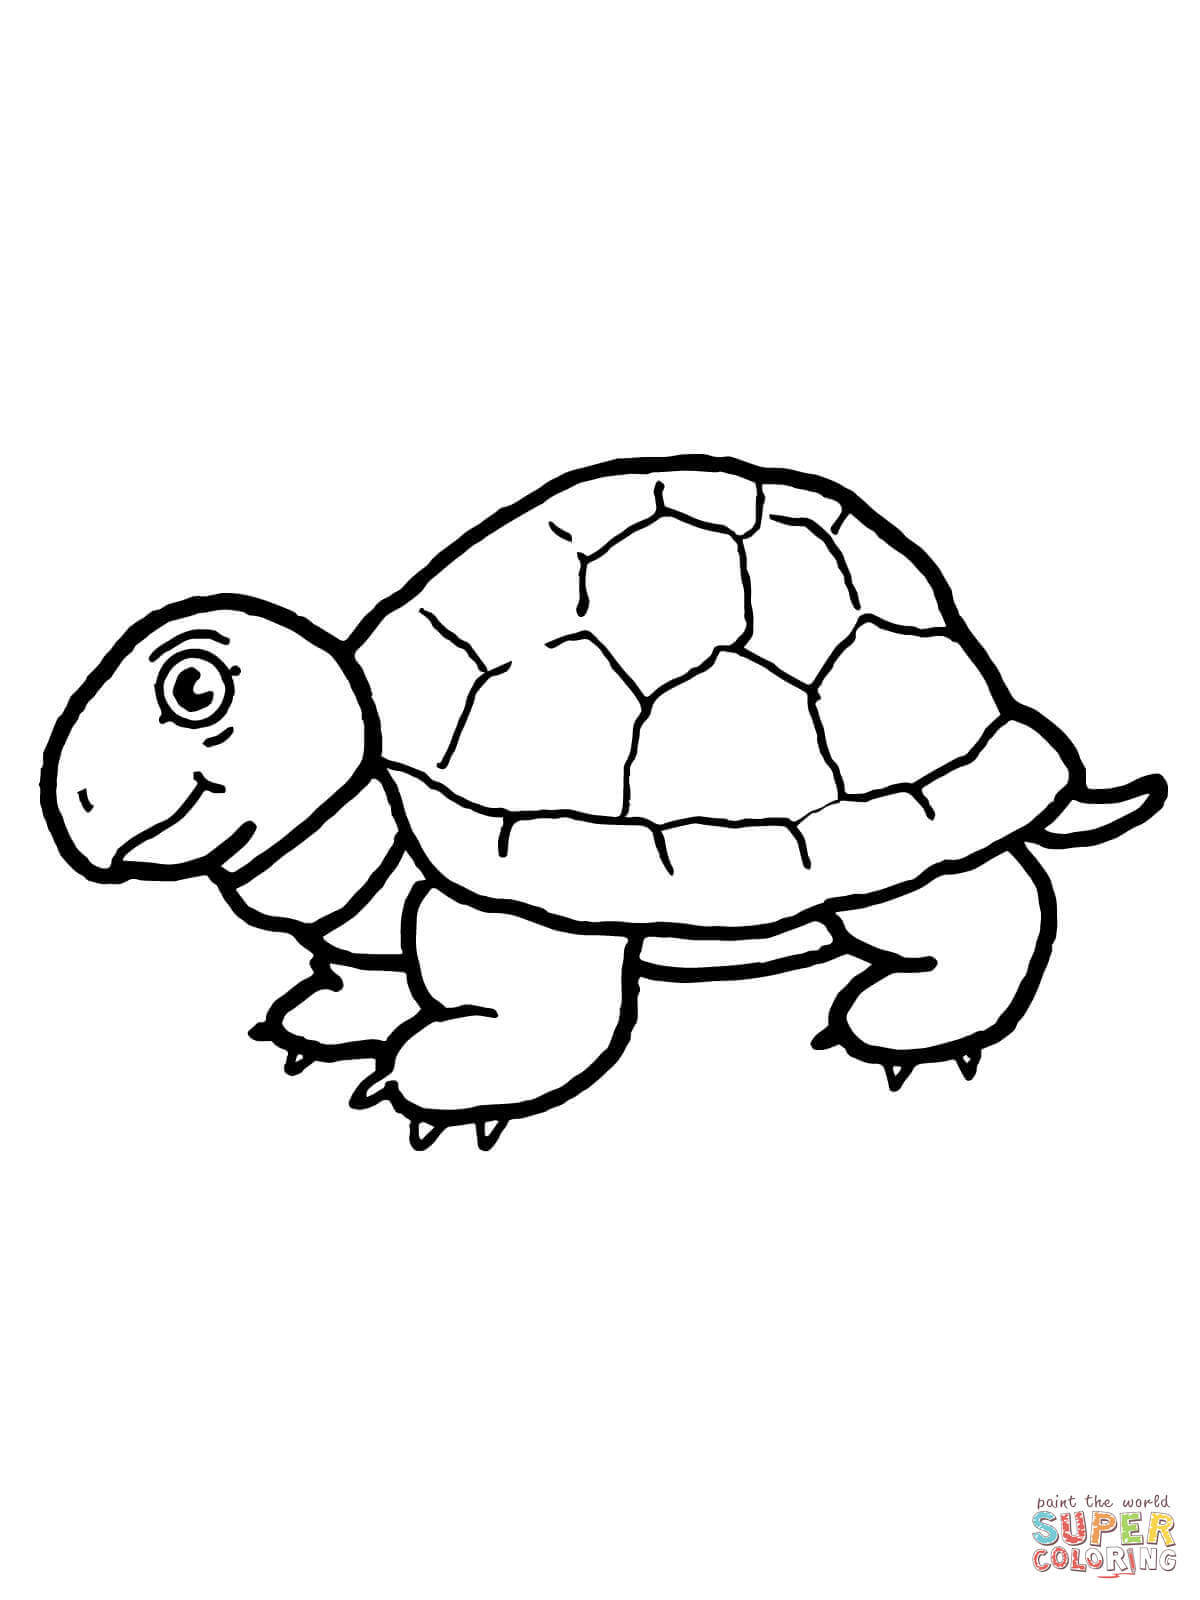 Cute Tortoise Coloring Page